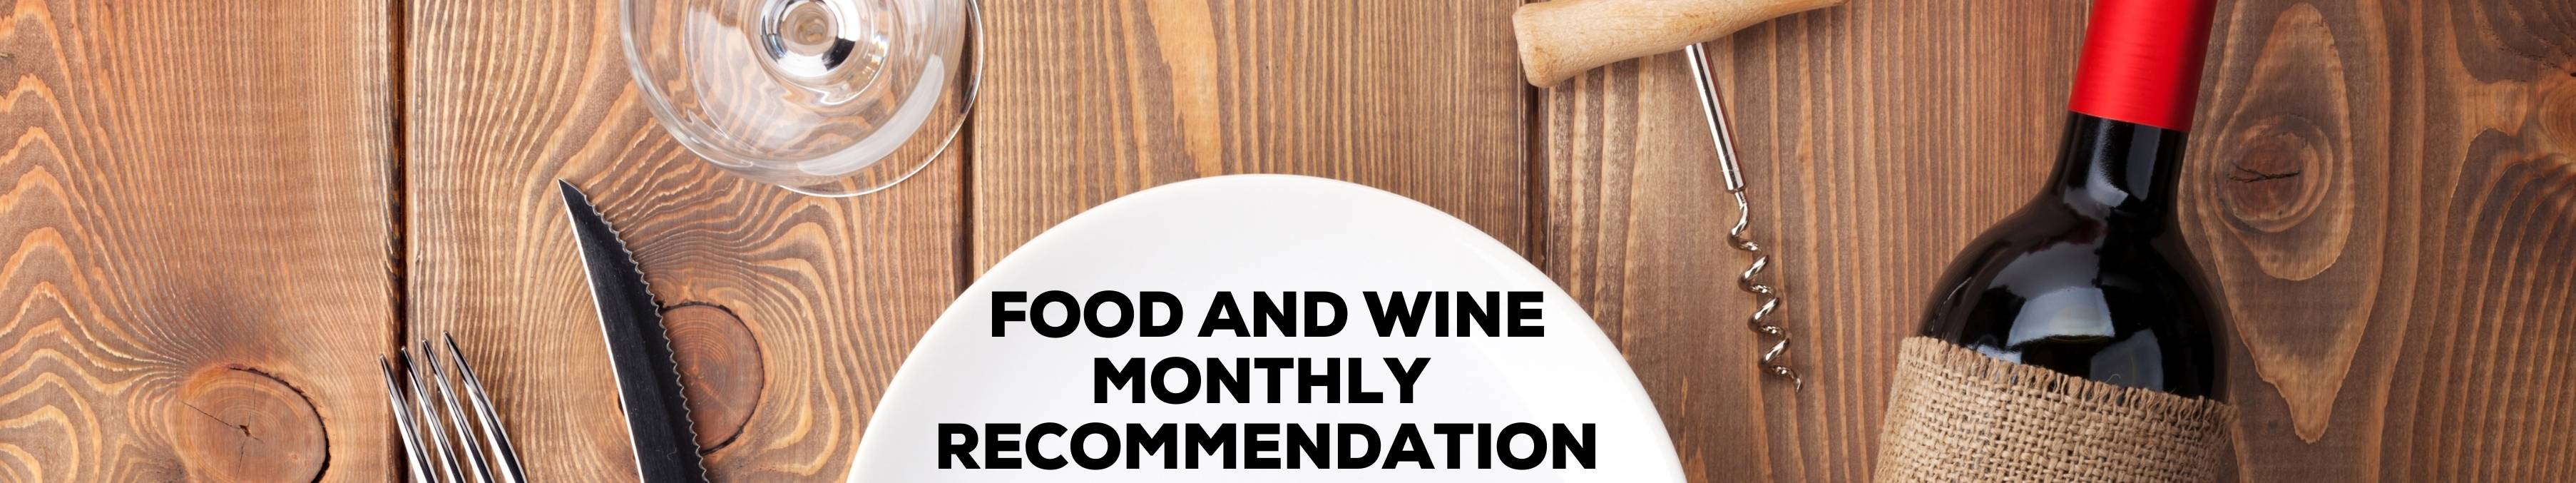 Wine Food Banner Monthly